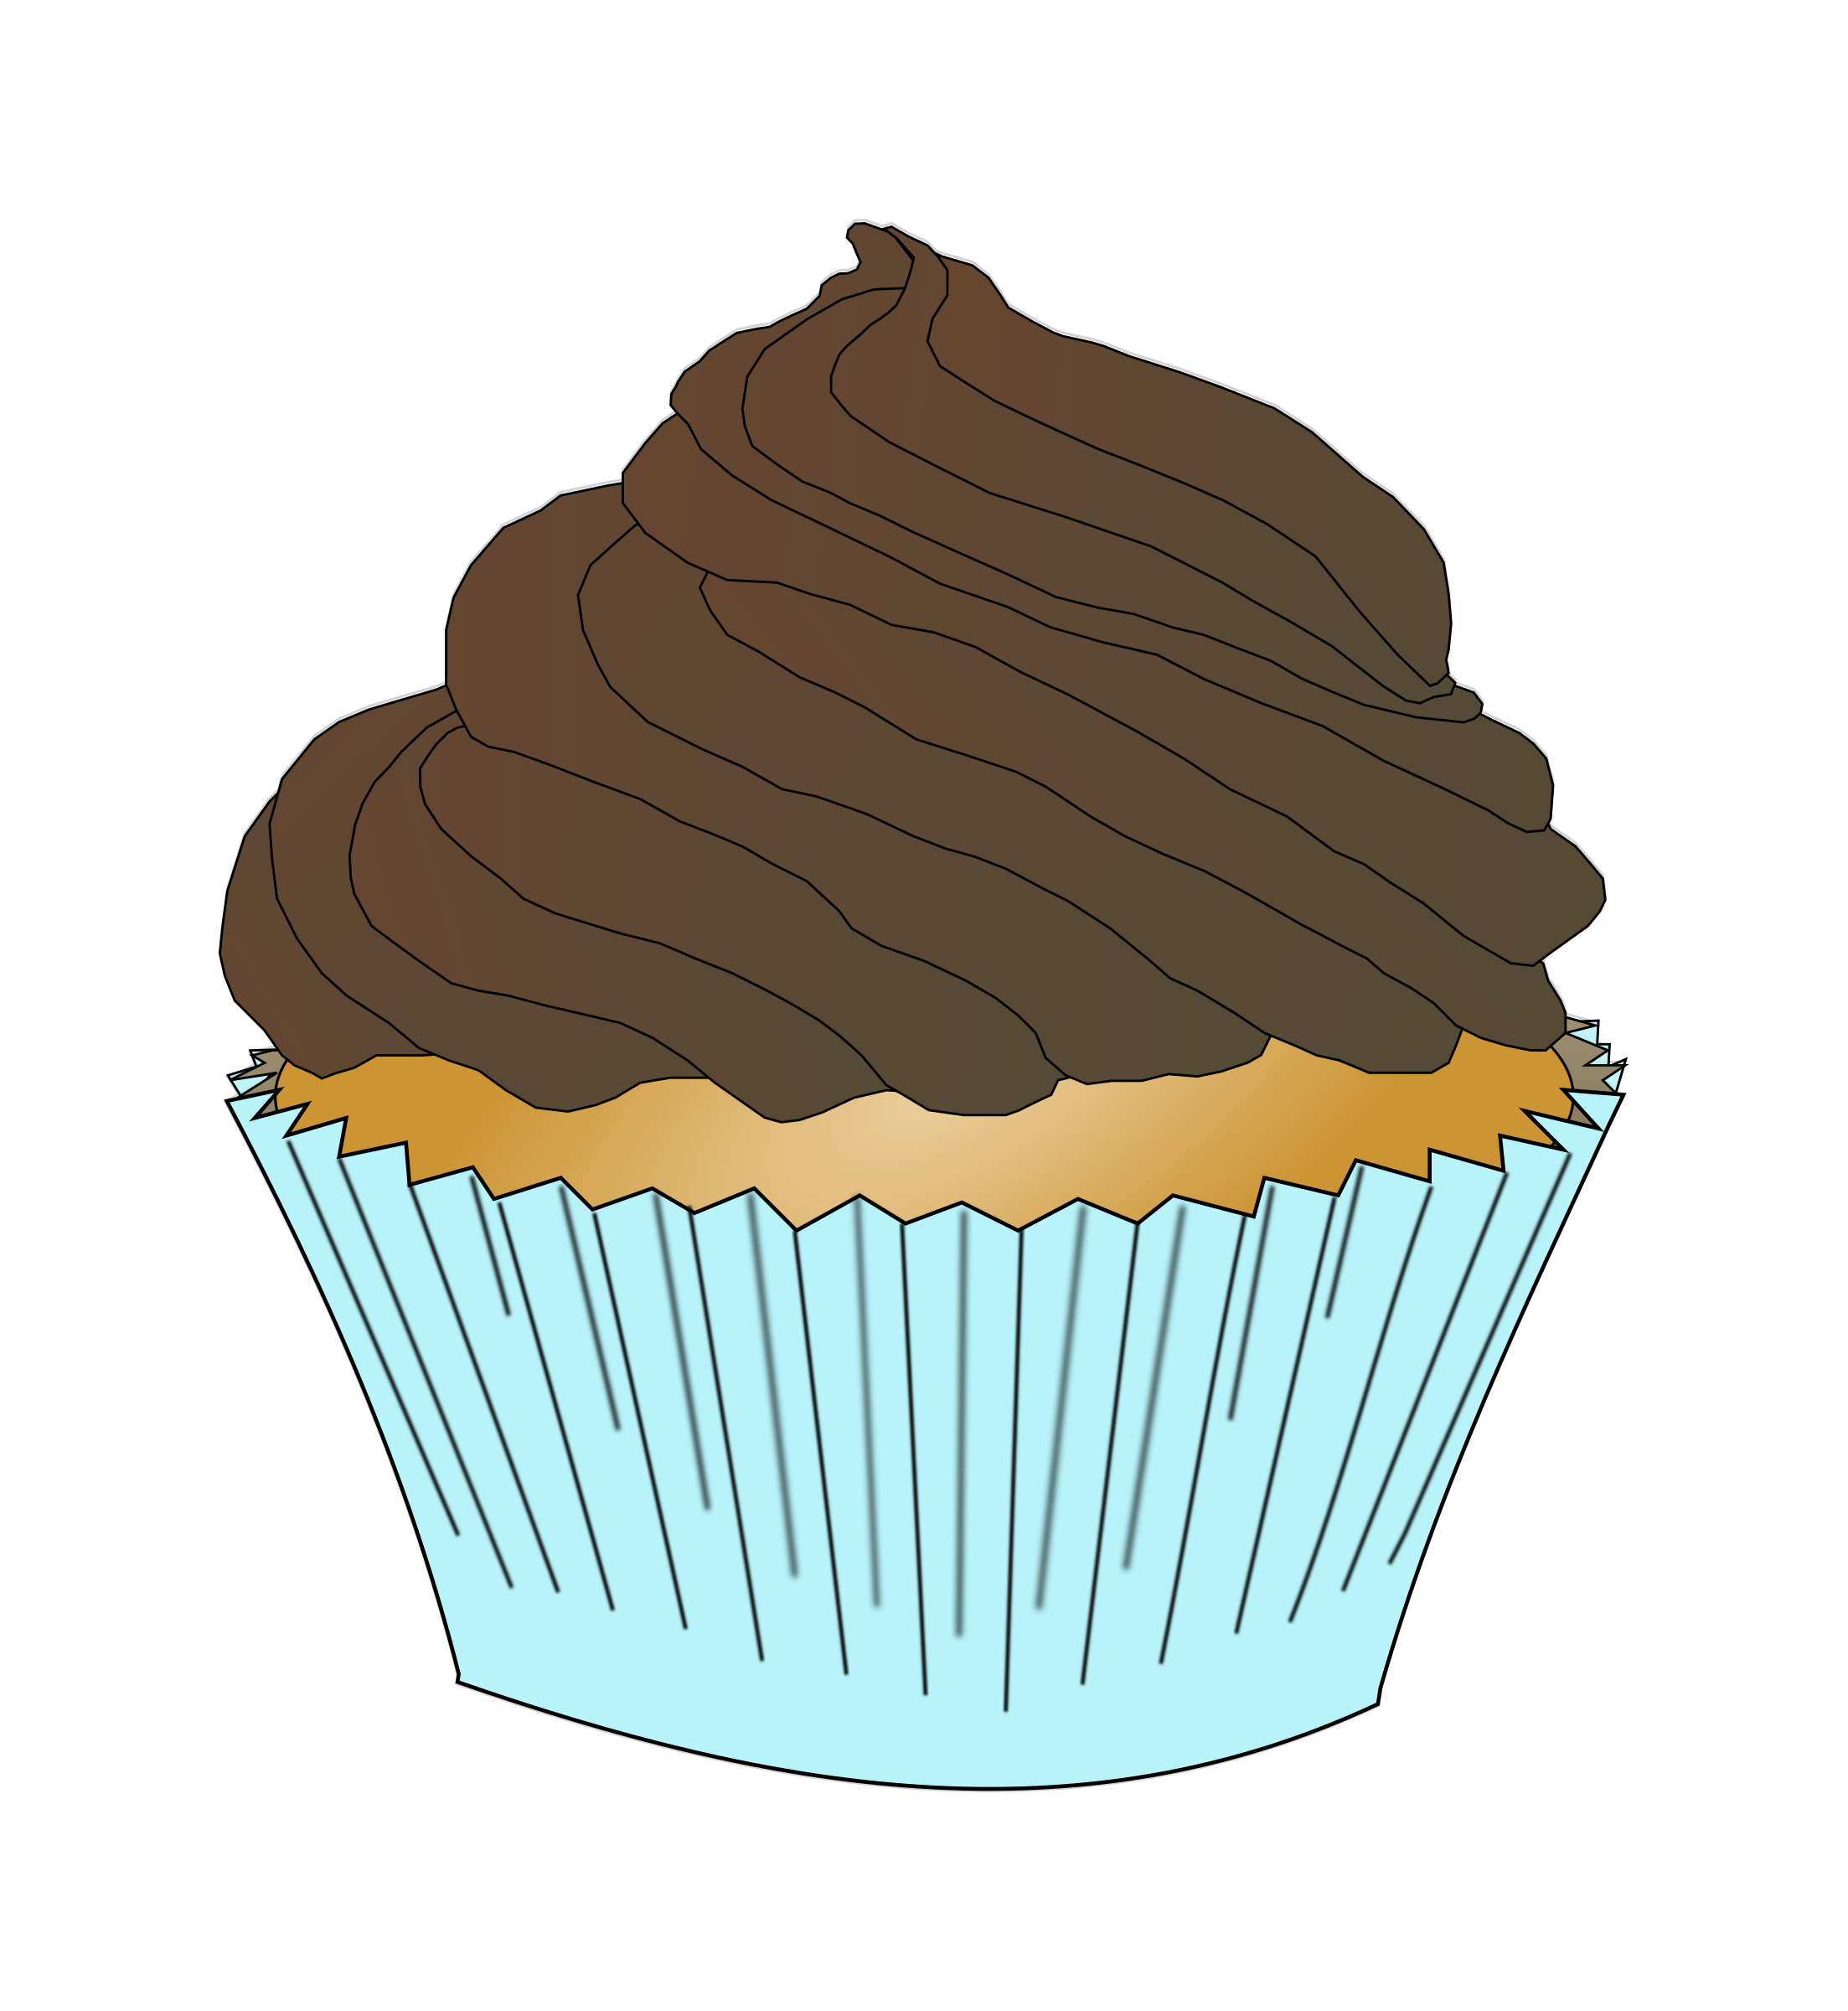 Desserts clipart vanilla cupcake. Chocolate frosting big image